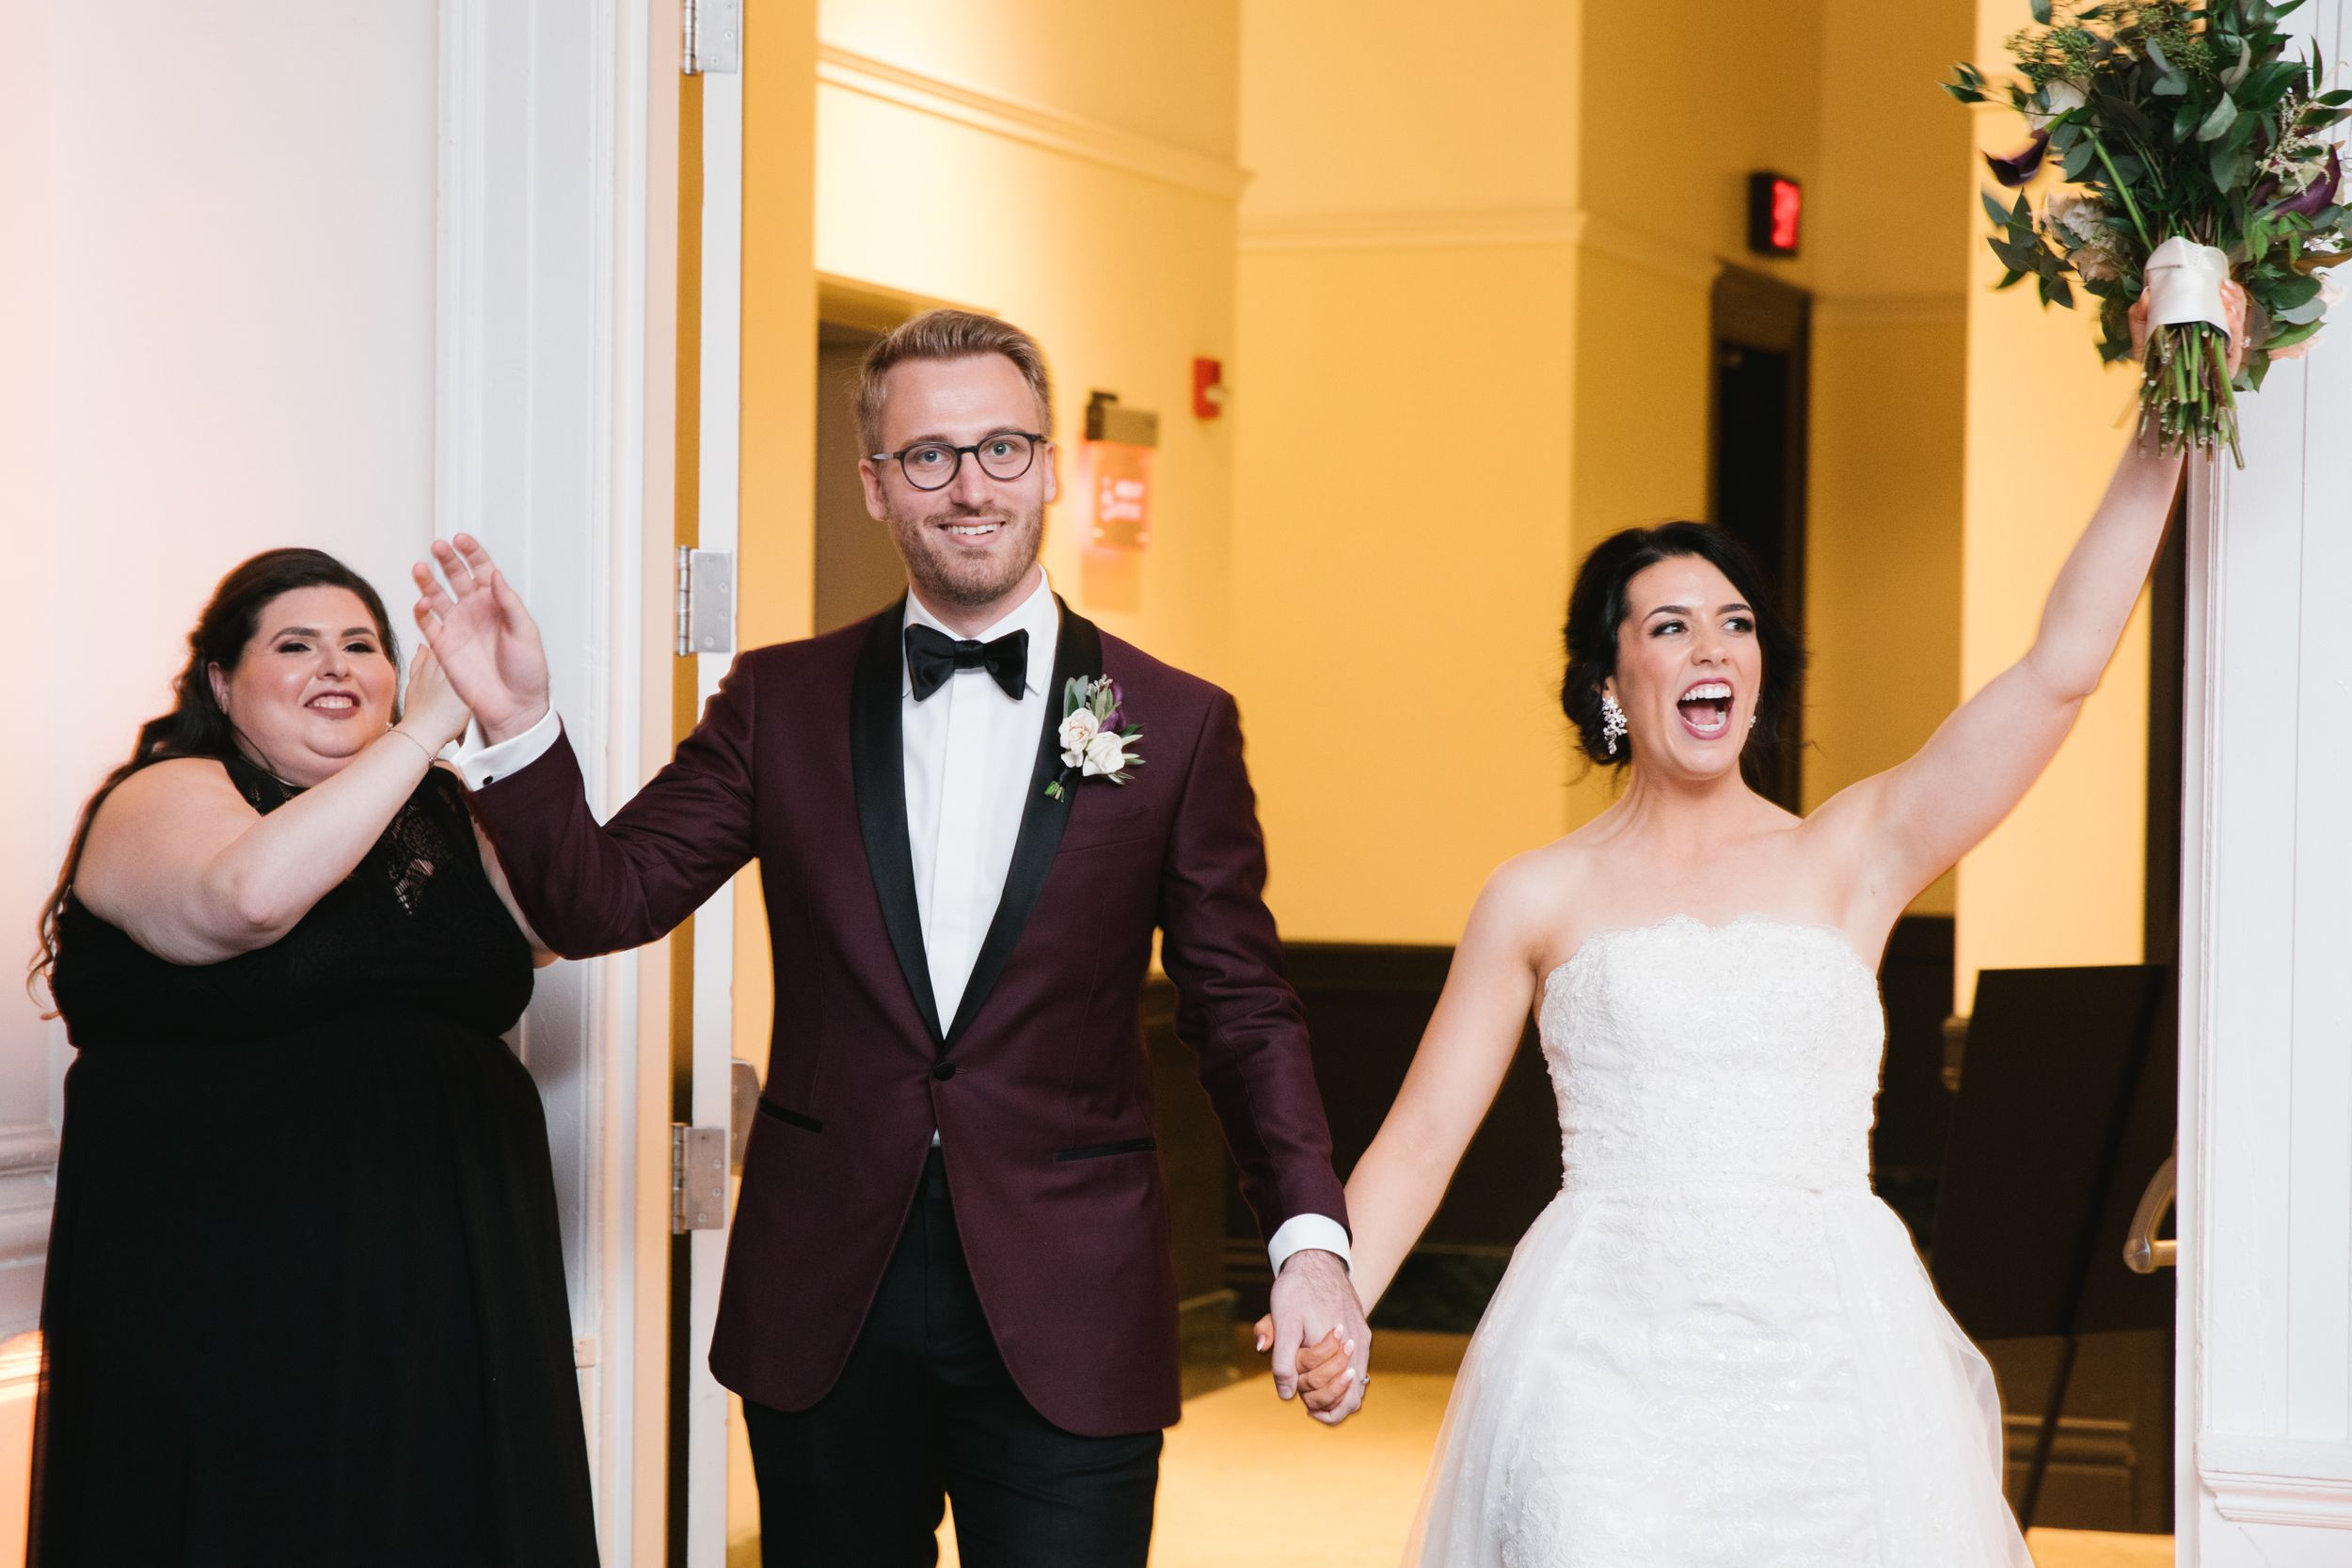 bride and groom enter reception hall with a celebration wedding